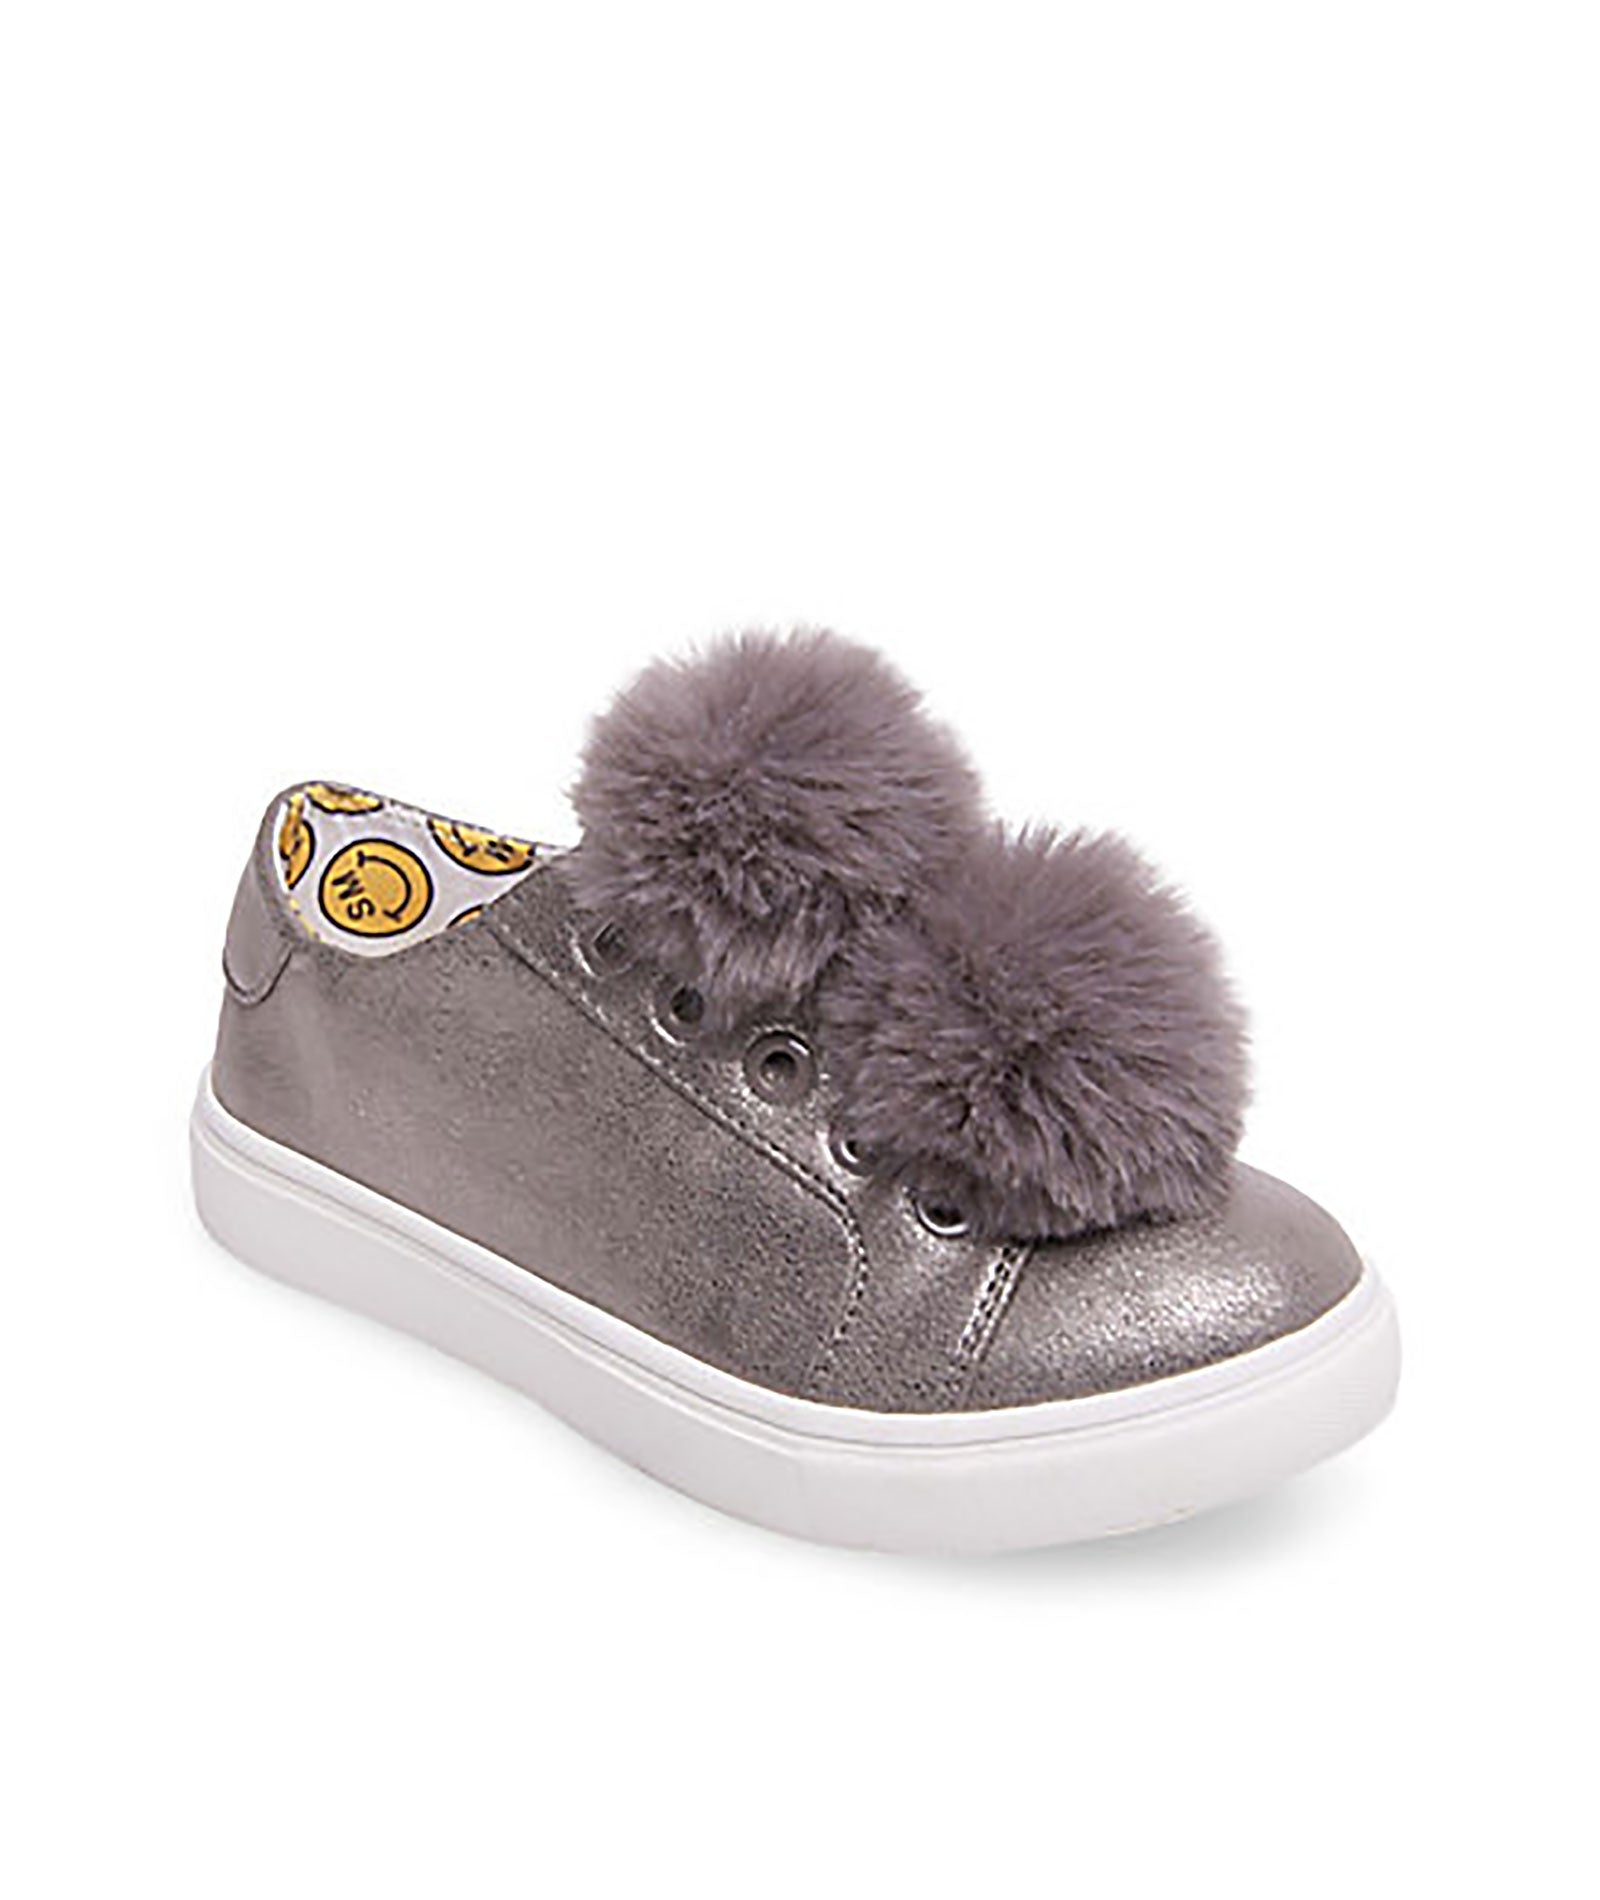 steve madden shoes with fur pom pom boots girls 1000587